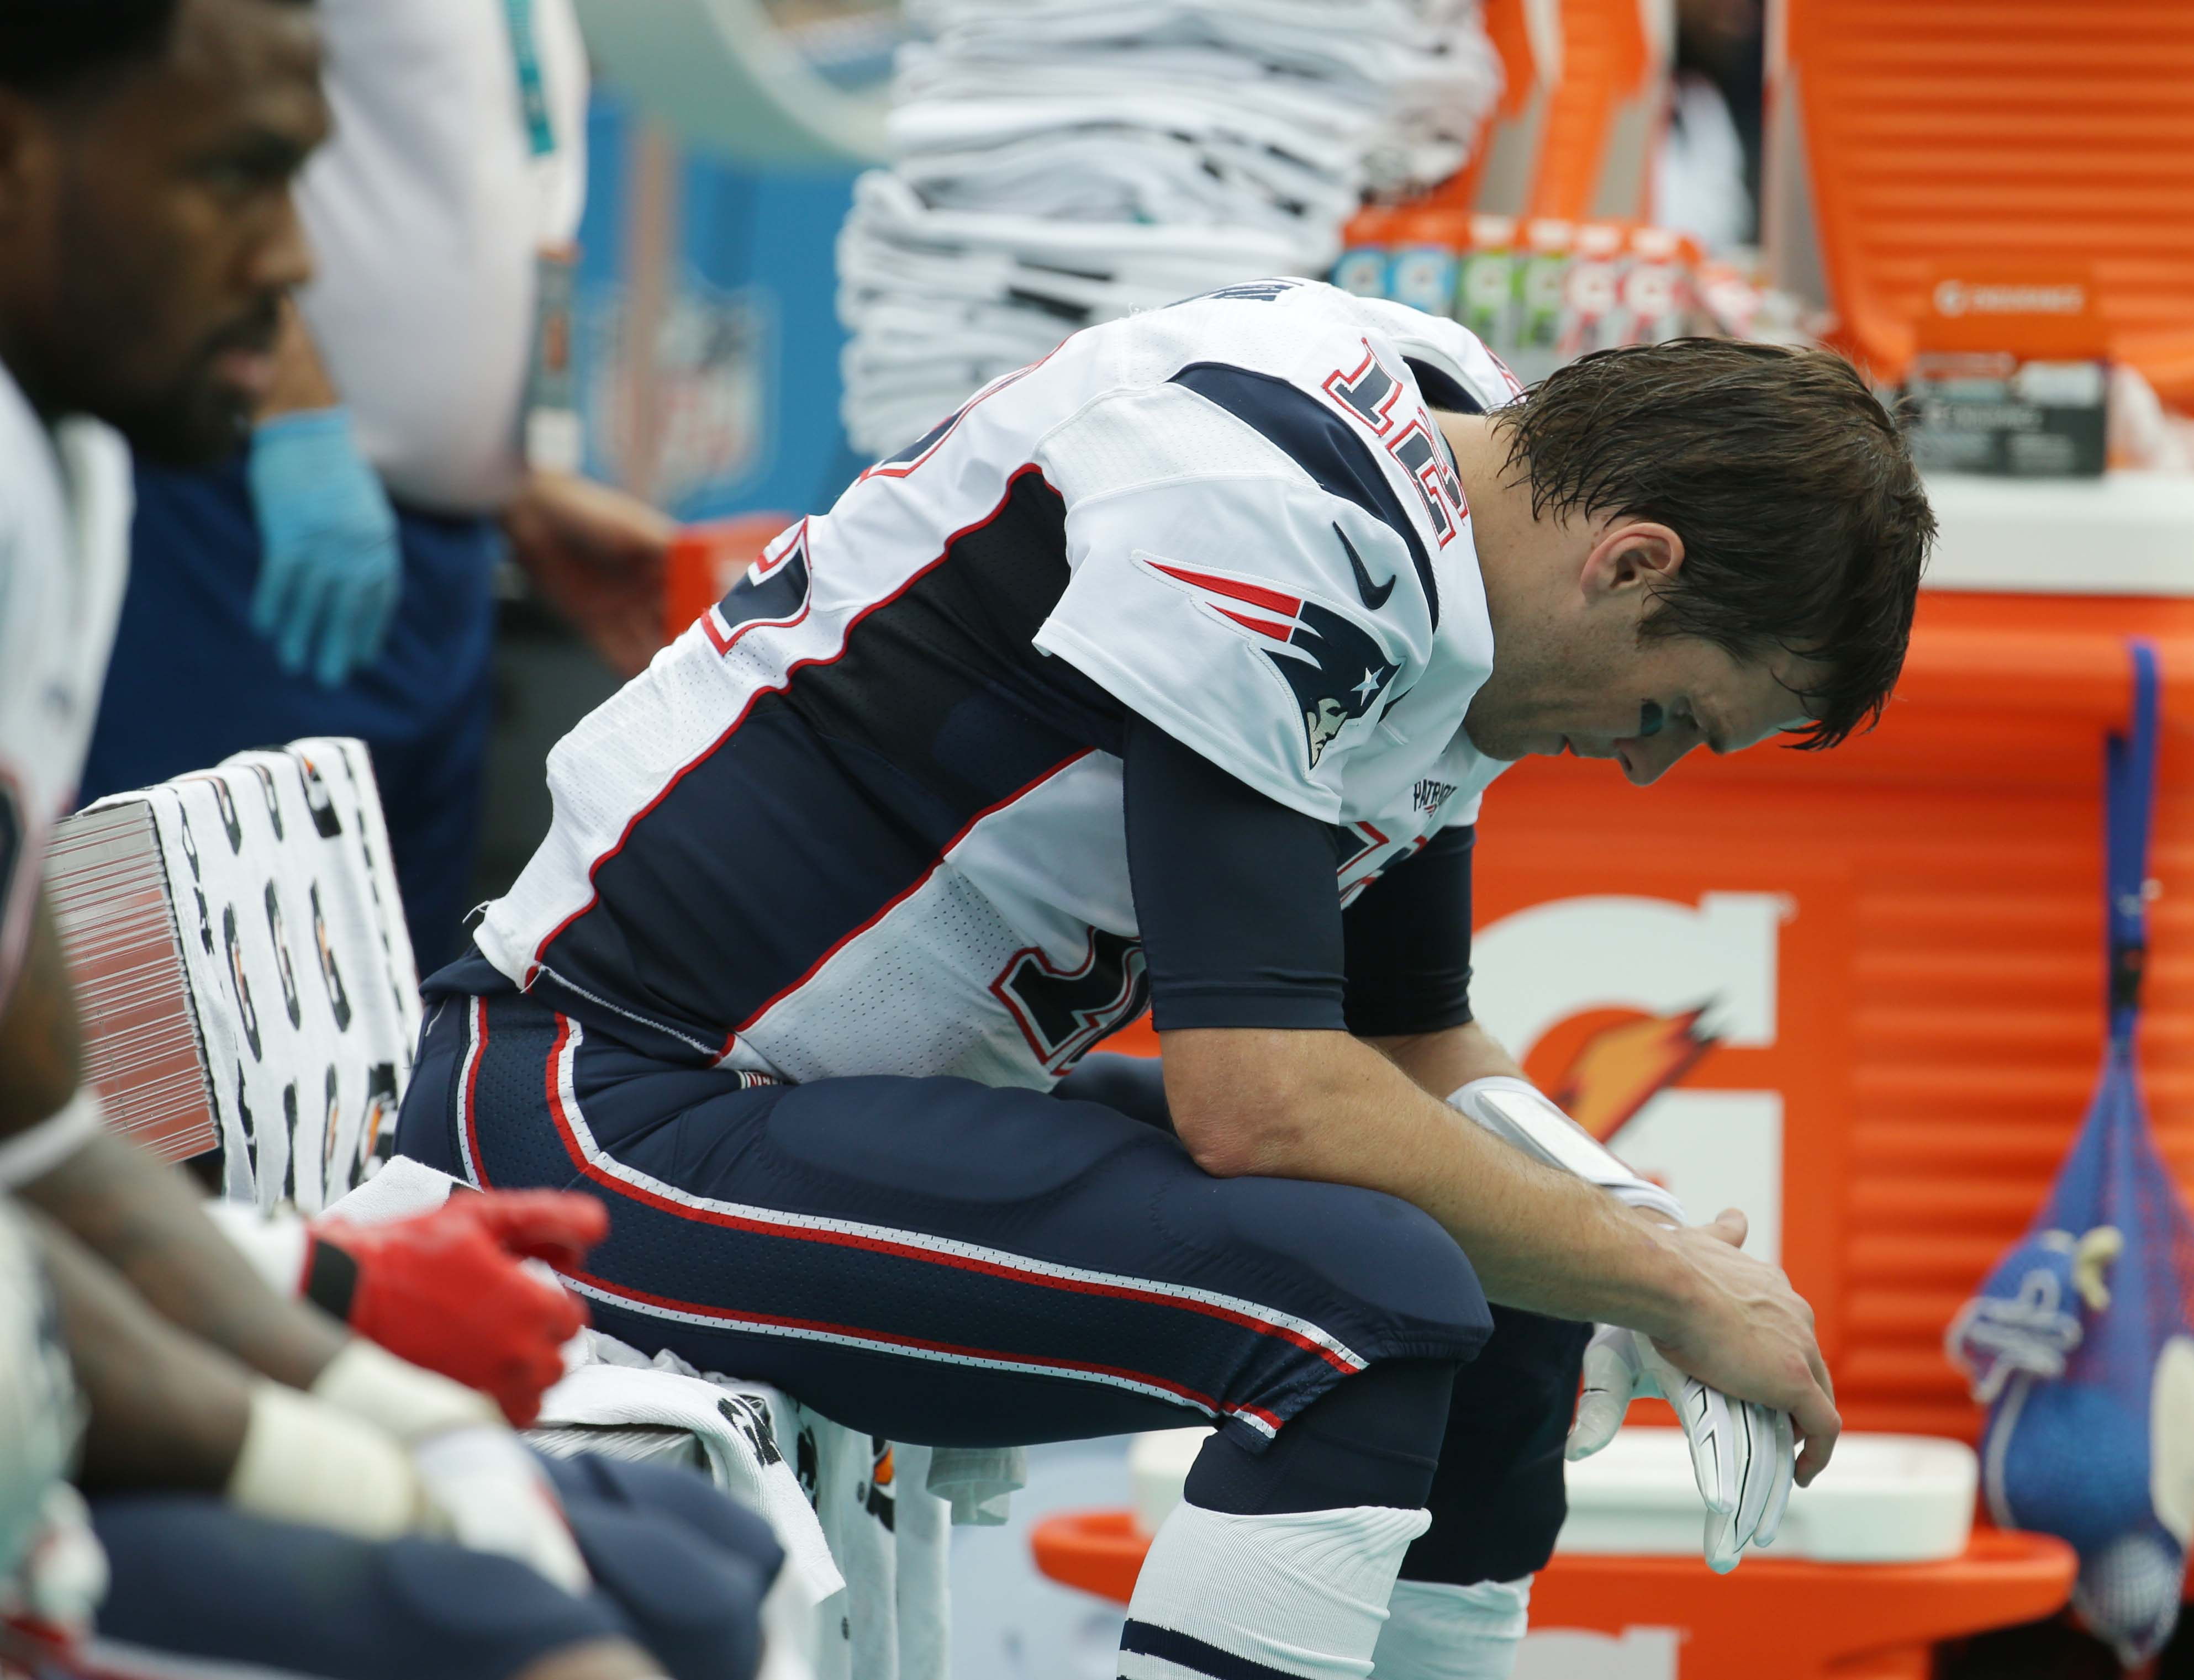 New England Patriots quarterback Tom Brady (12) sits in the sidelines during the first half of an NFL football game against the Miami Dolphins, Sunday, Jan. 3, 2016 in Miami Gardens, Fla. (AP Photo/Lynne Sladky)